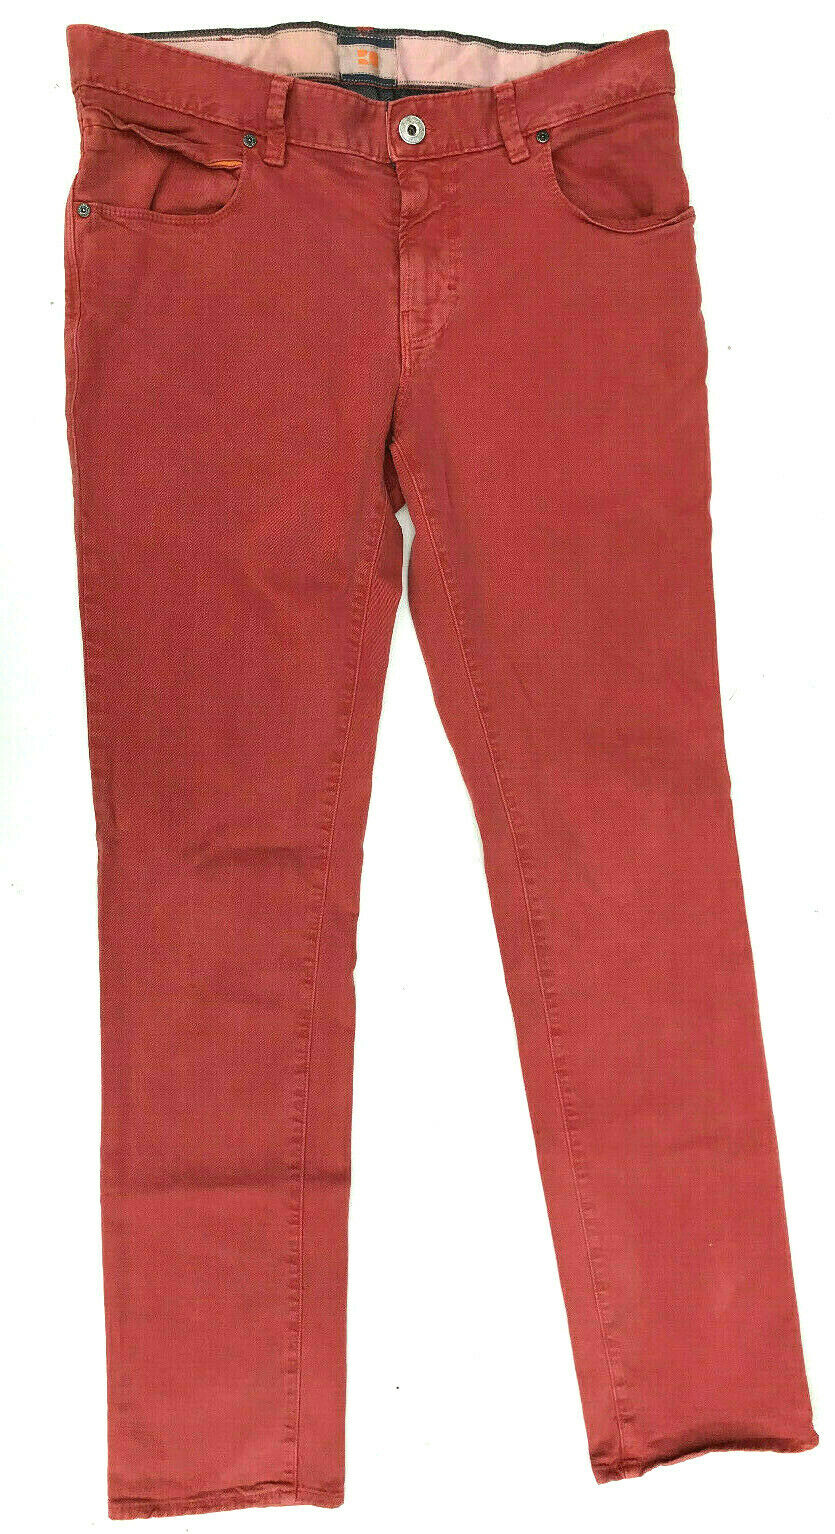 Hugo Boss Jeans 'orange63 COLOURED' SLIM FIT Mens Size W34 L34